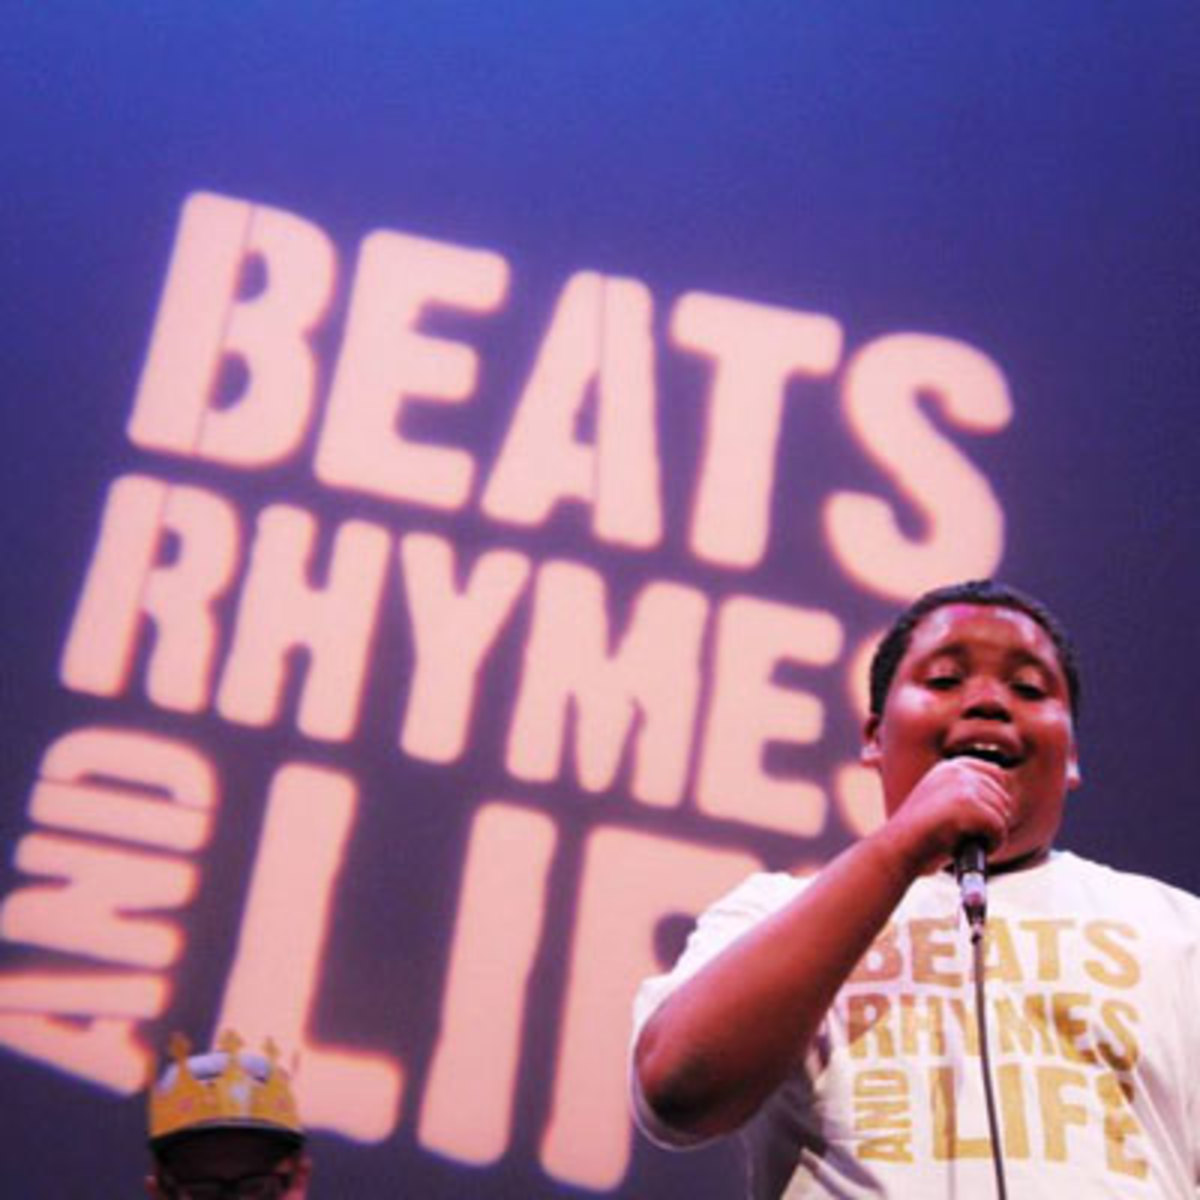 beats-rhymes-life.jpg